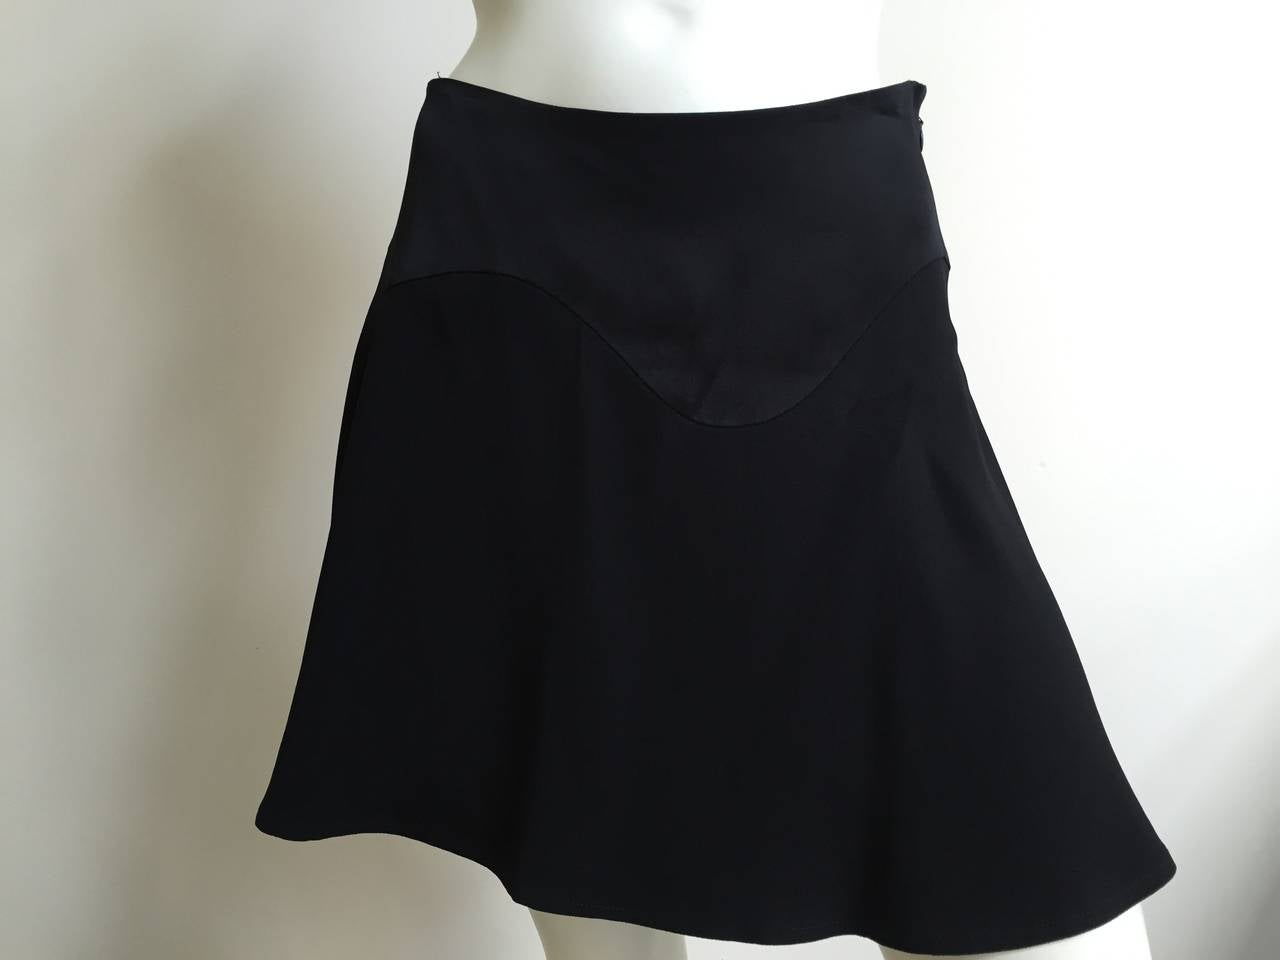 Moschino Cheap and Chic black short sexy skirt size 6. 3